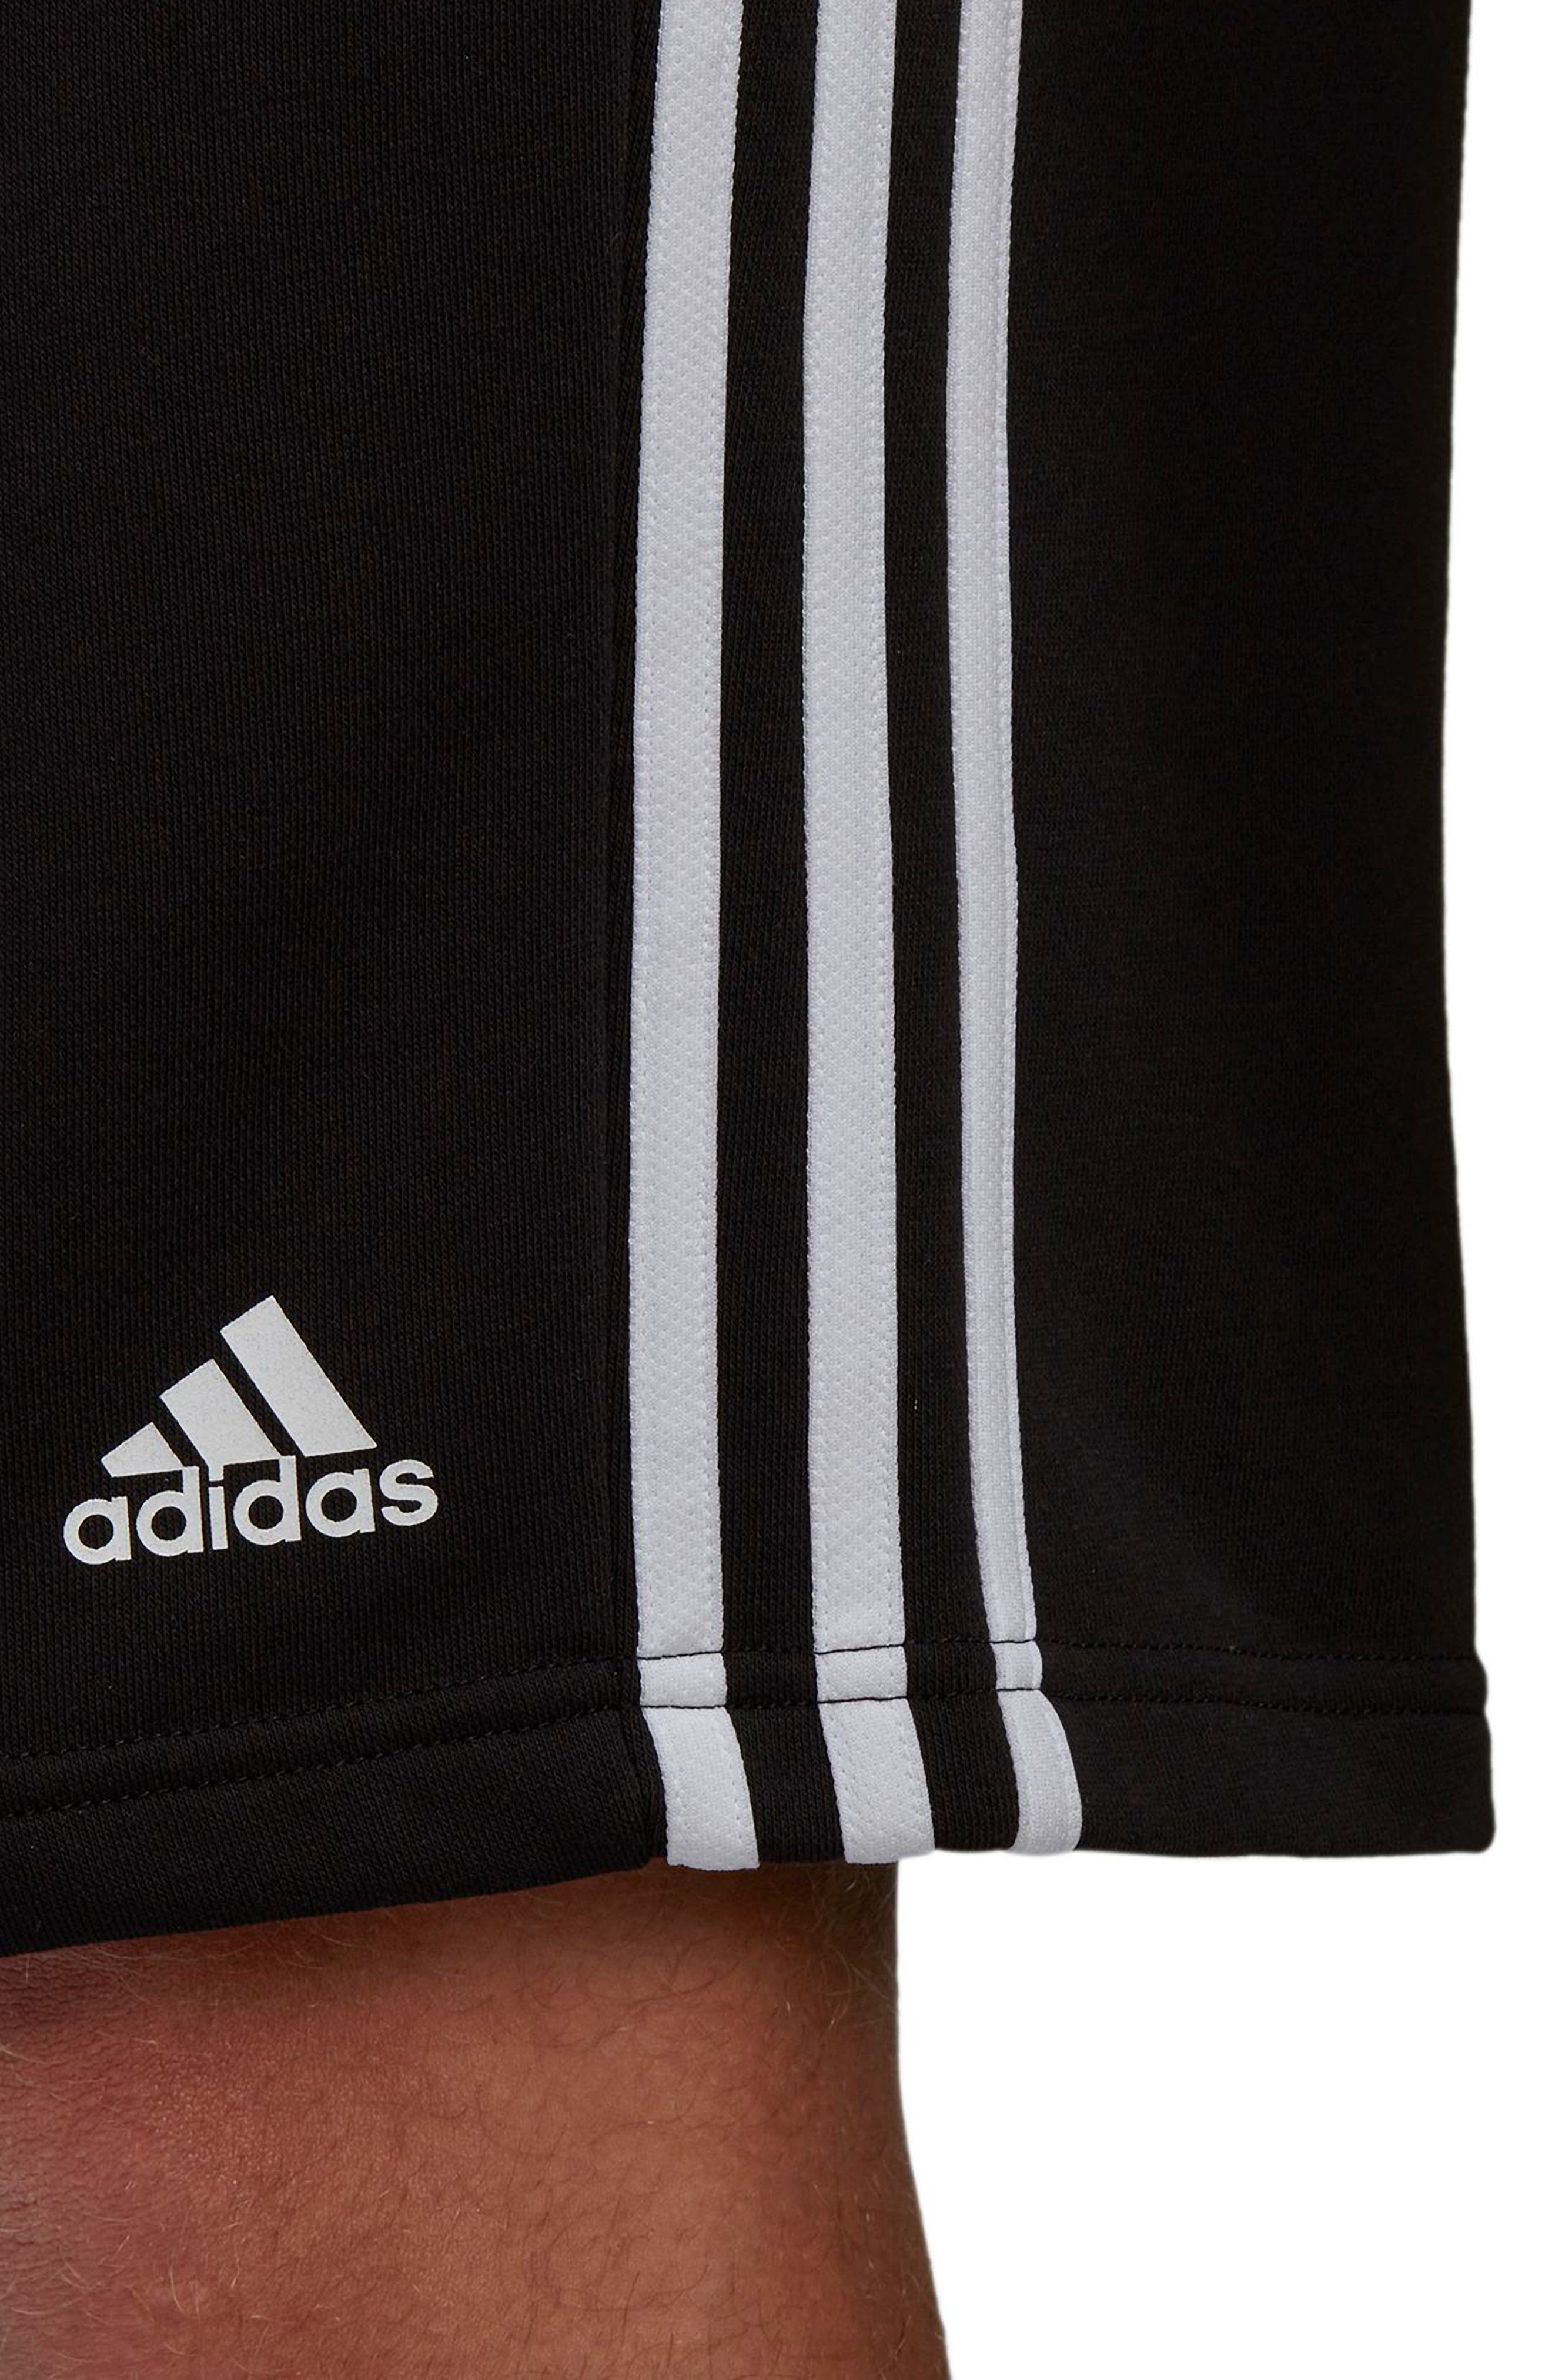 ADIDAS,                             Essentials French Terry Shorts,                             Alternate thumbnail 7, color,                             BLACK/ WHITE